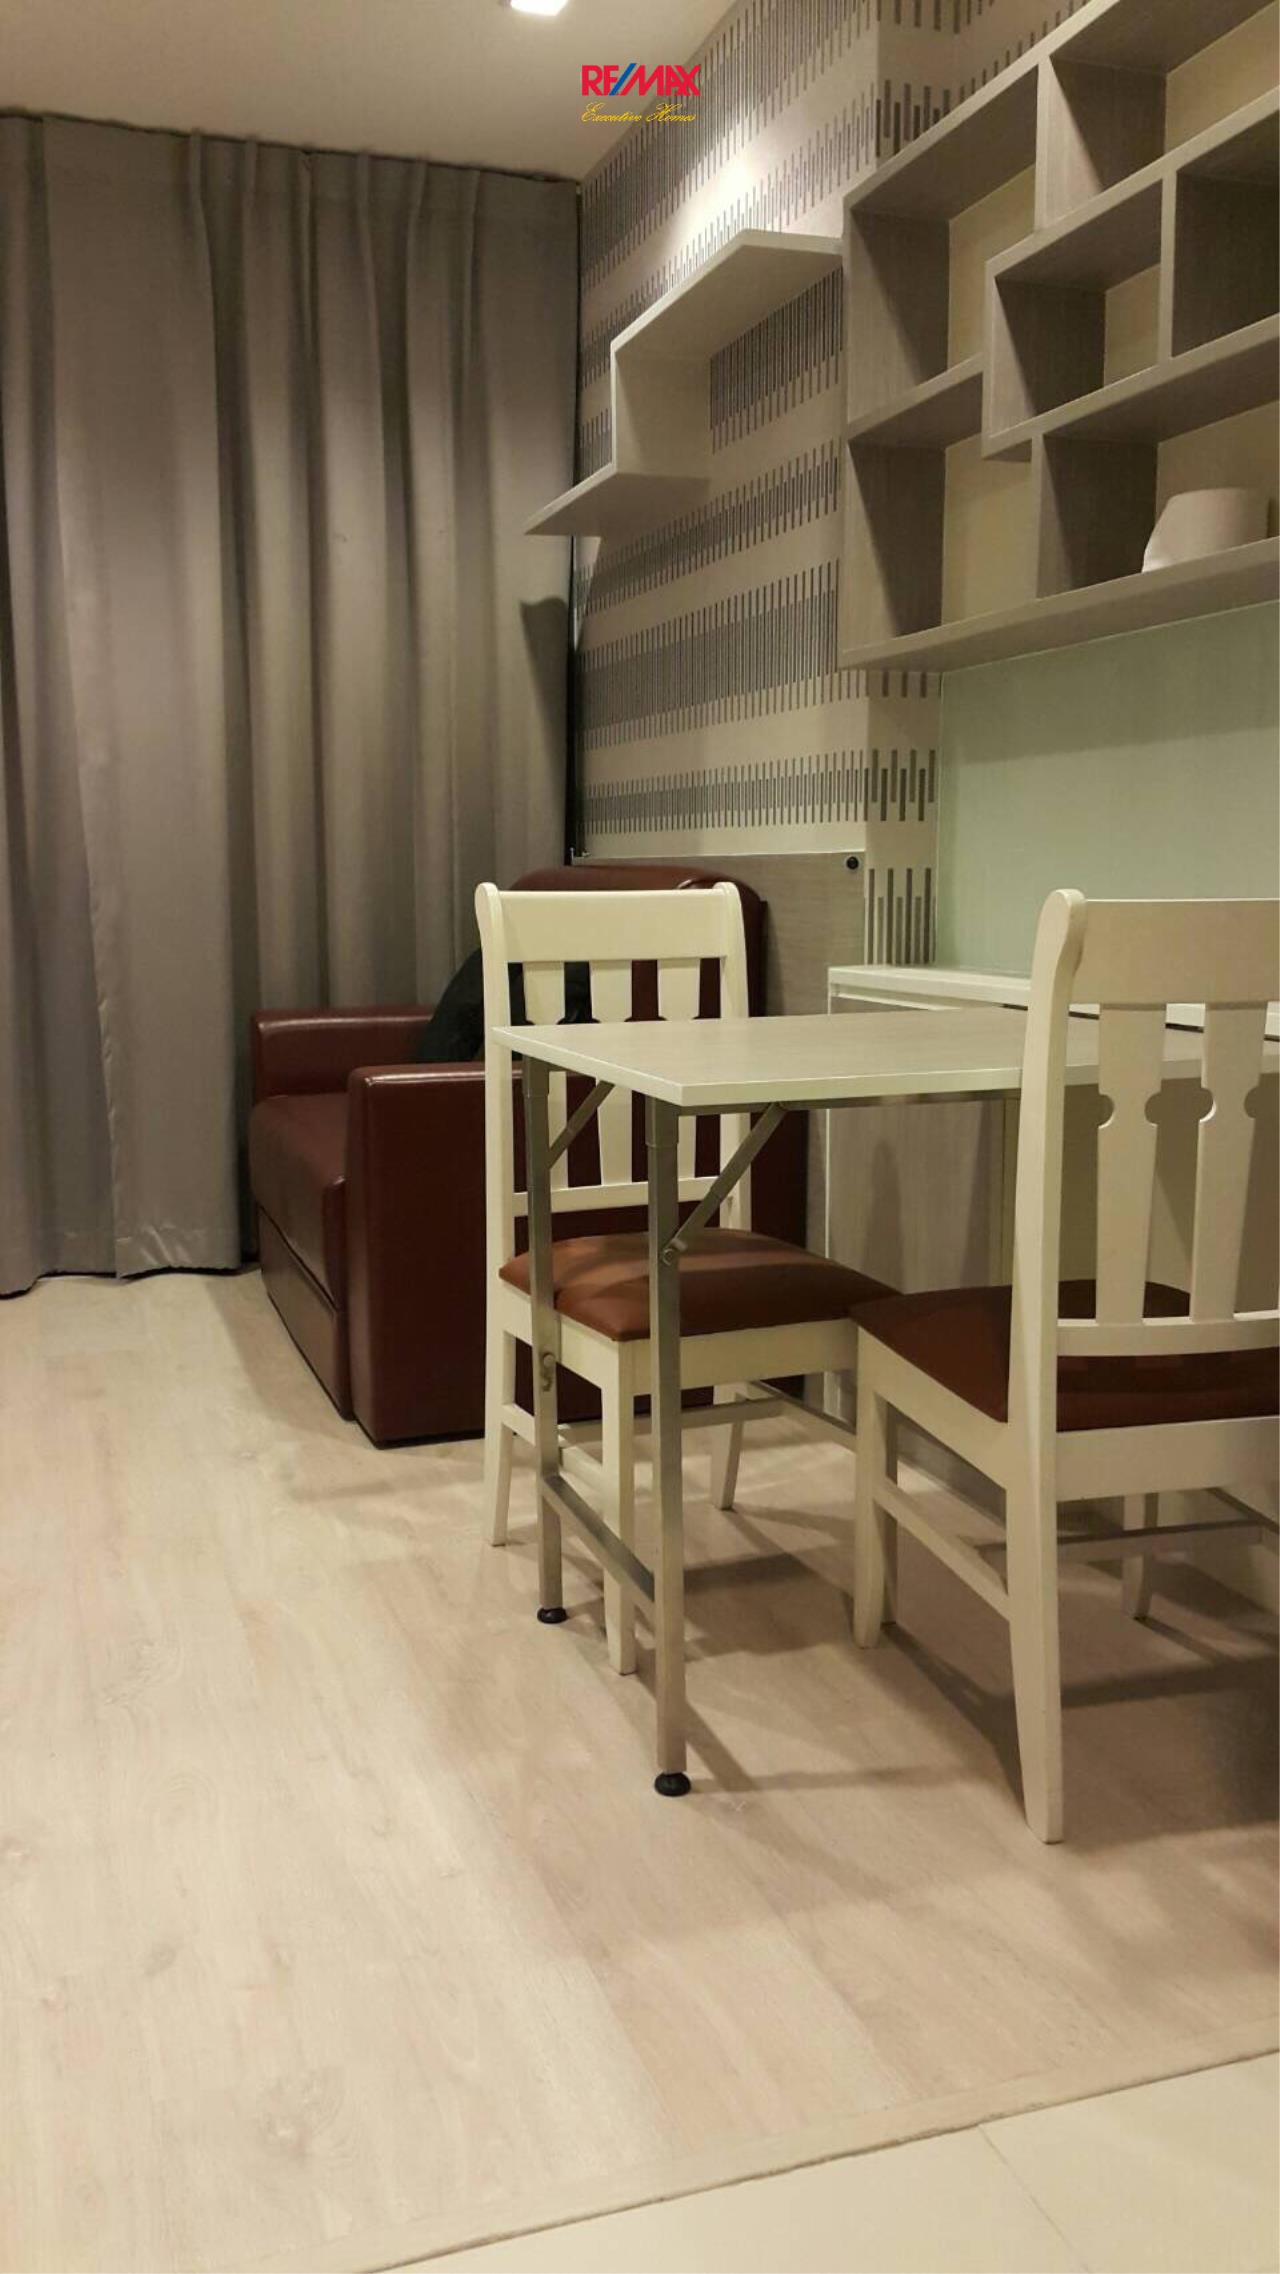 RE/MAX Executive Homes Agency's Nice 1 Bedroom for Rent Ideo Mobi Sathorn 8